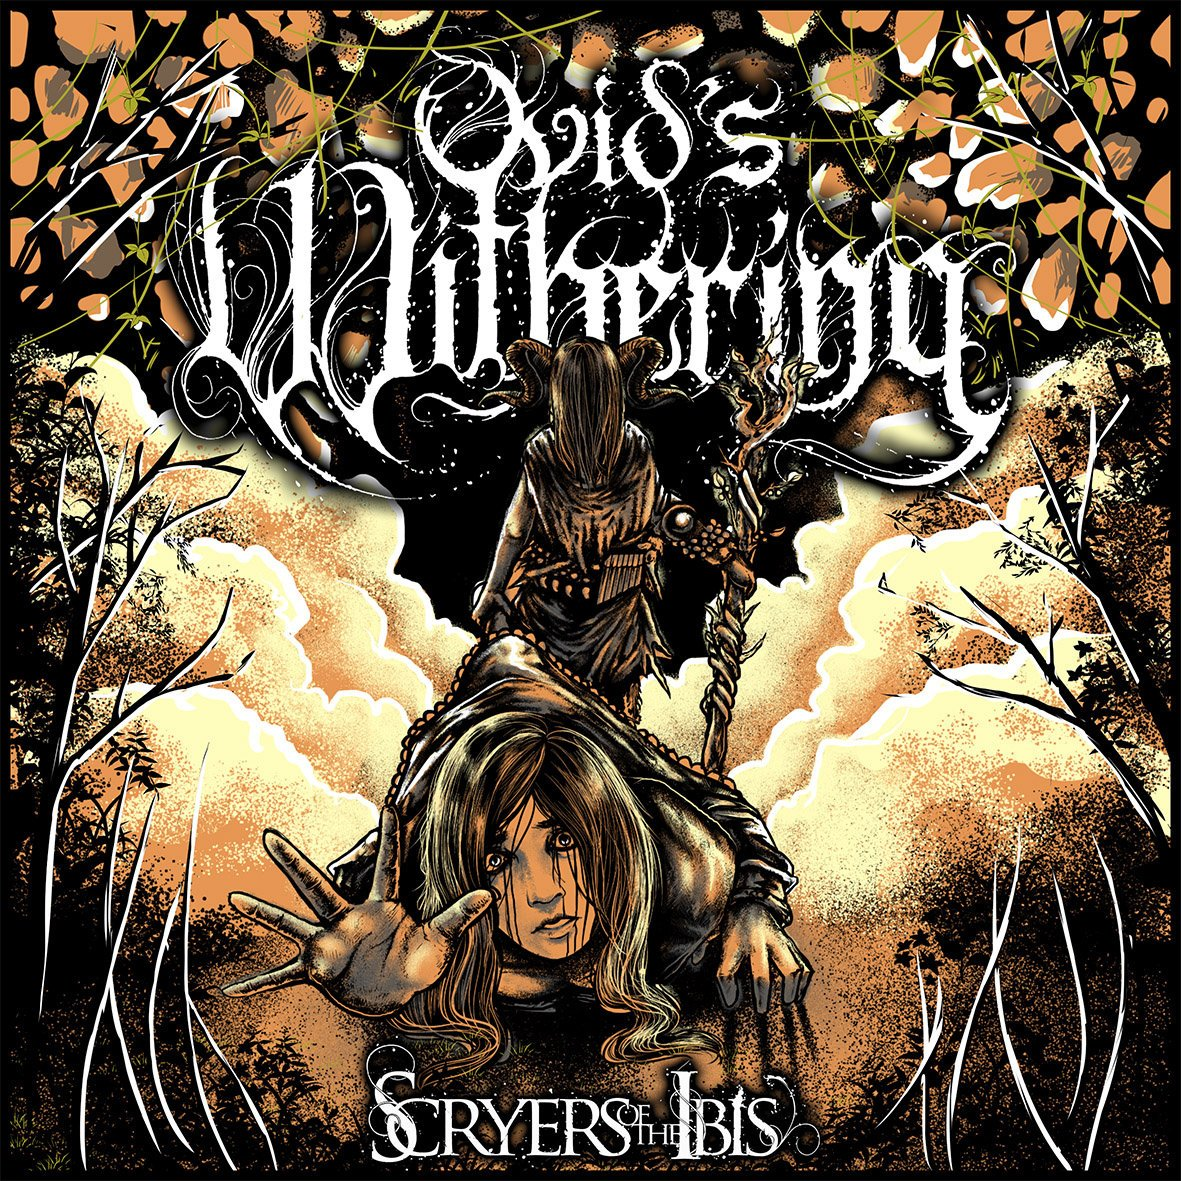 CD : Ovid's Withering - Scryers Of The Ibis (Digipack Packaging)